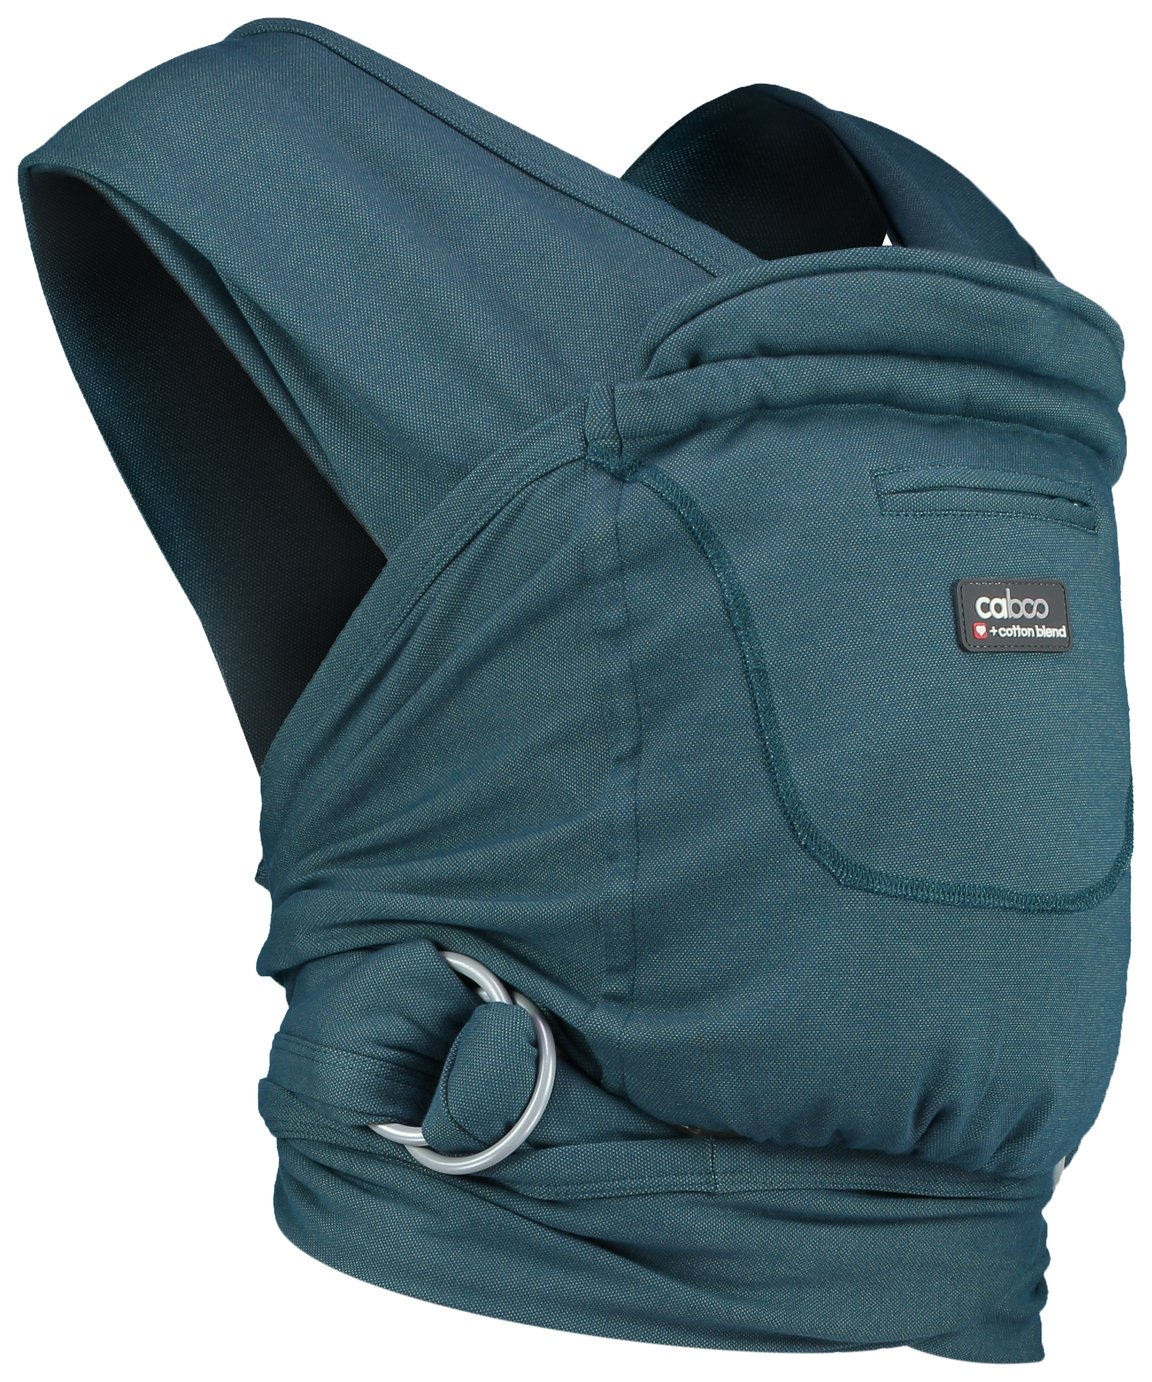 Image of Caboo + Cotton Blend Newborn Baby Carrier - Balsam